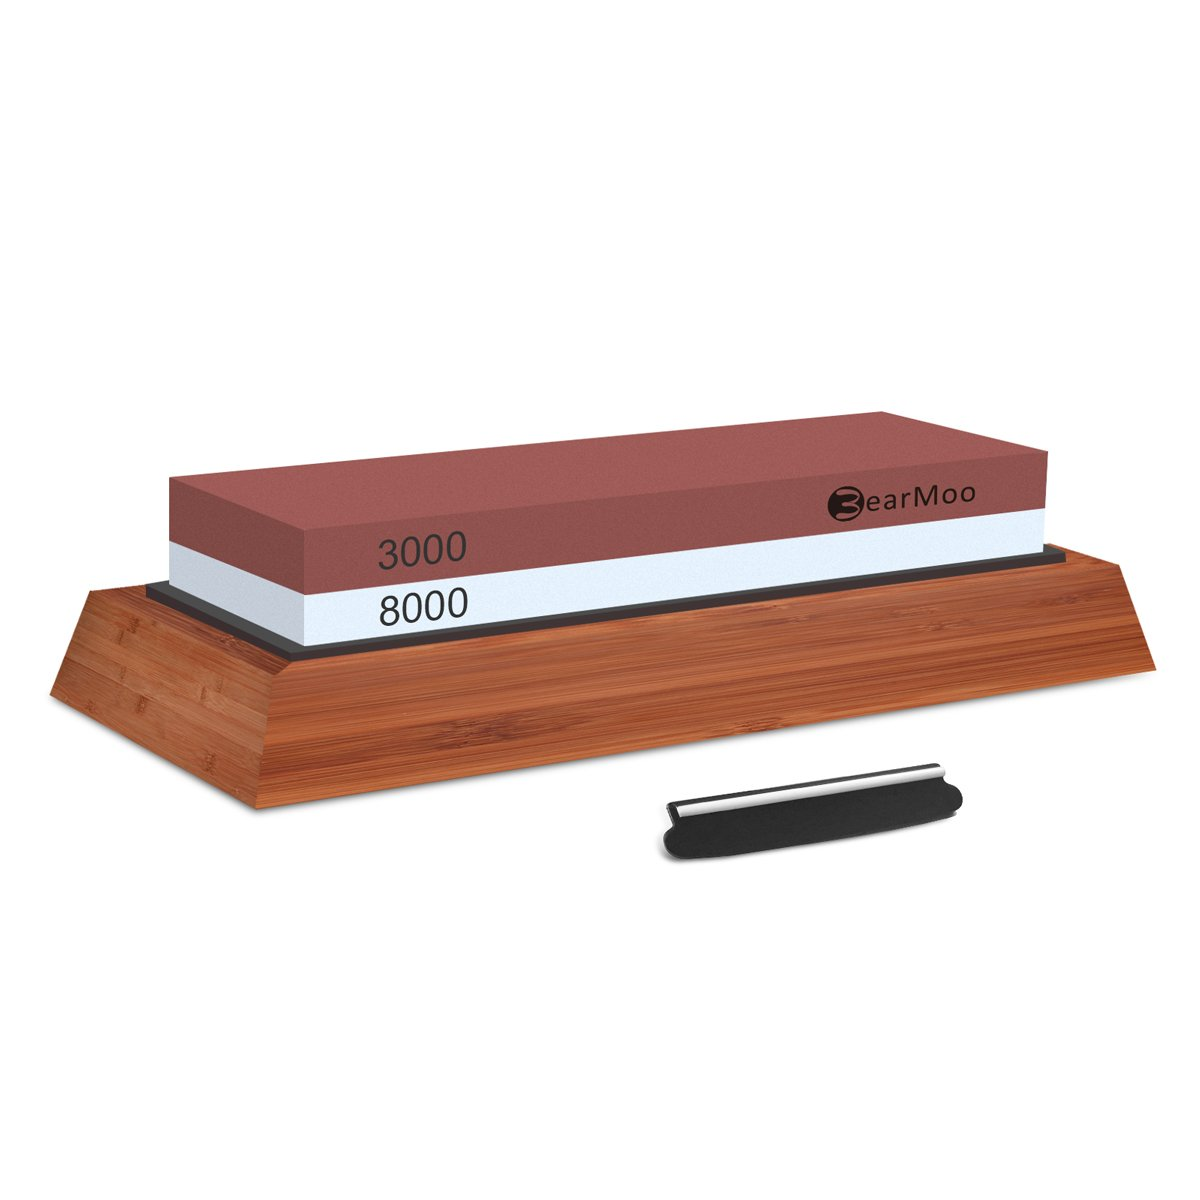 Knife Sharpening Stone, BearMoo Professional Waterstones Combination Grit 3000/8000 Whetstone Sharpening with Bamboo Base, Blade Guide Sharpener Stone SS05